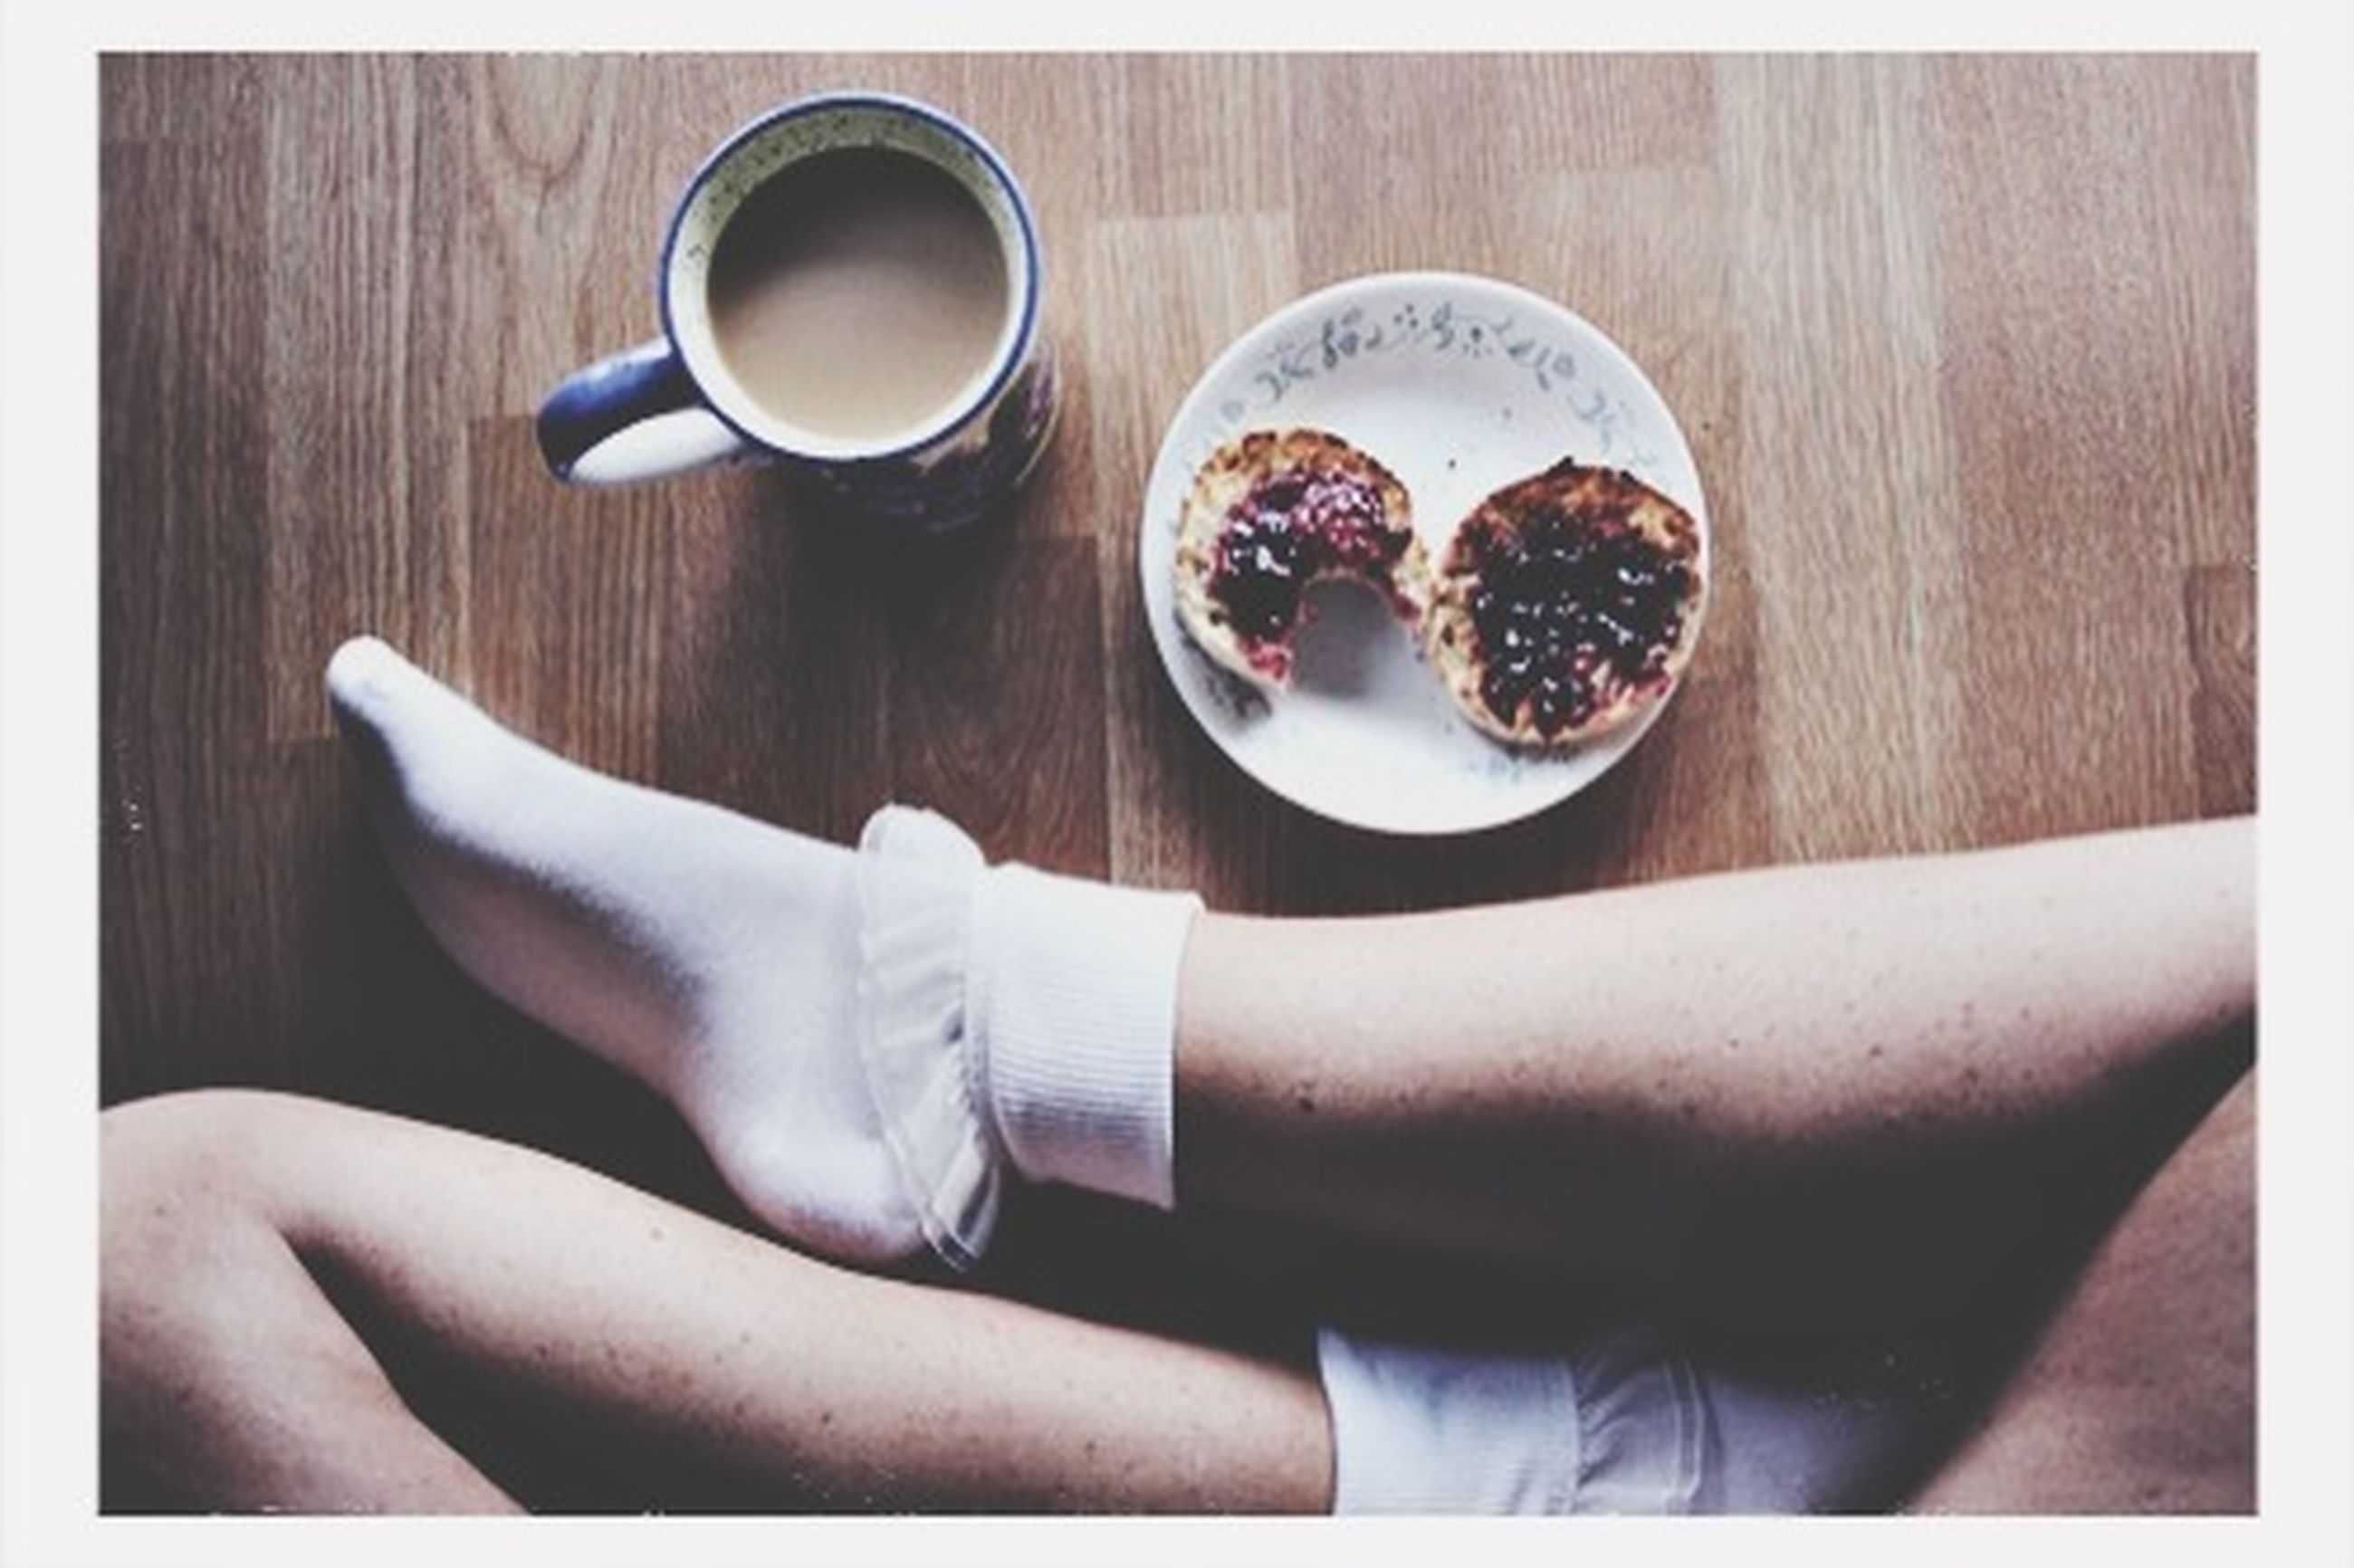 indoors, food and drink, person, table, drink, freshness, refreshment, coffee cup, holding, food, high angle view, part of, lifestyles, coffee - drink, coffee, transfer print